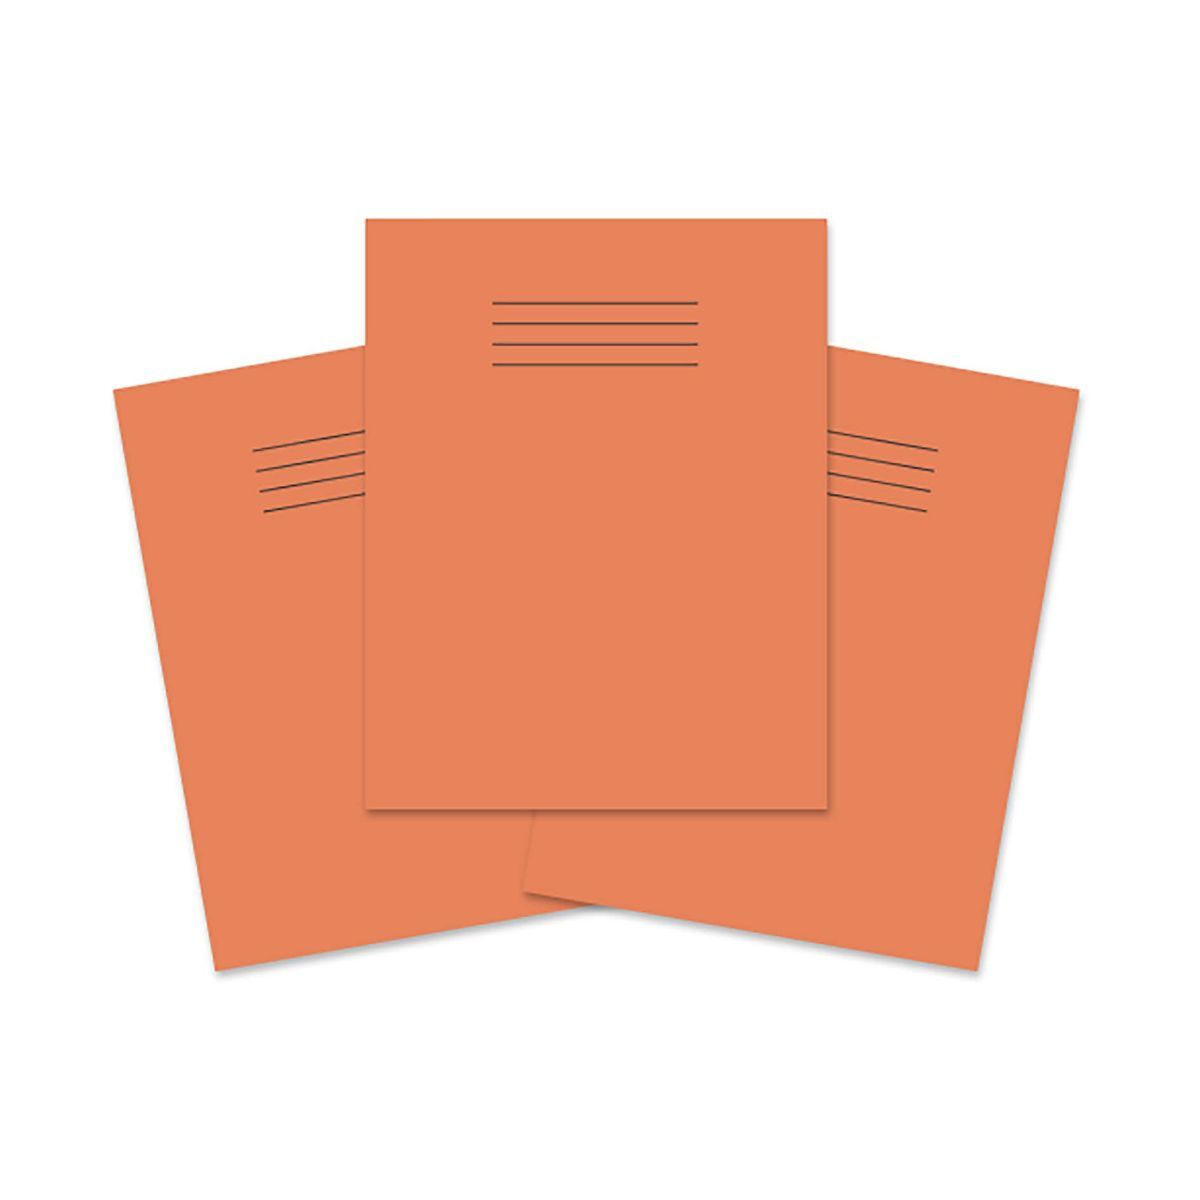 Exercise Book 9 inch x 7 Inch 80 Pages 8mm Ruled and Margin Pack of 100 Orange